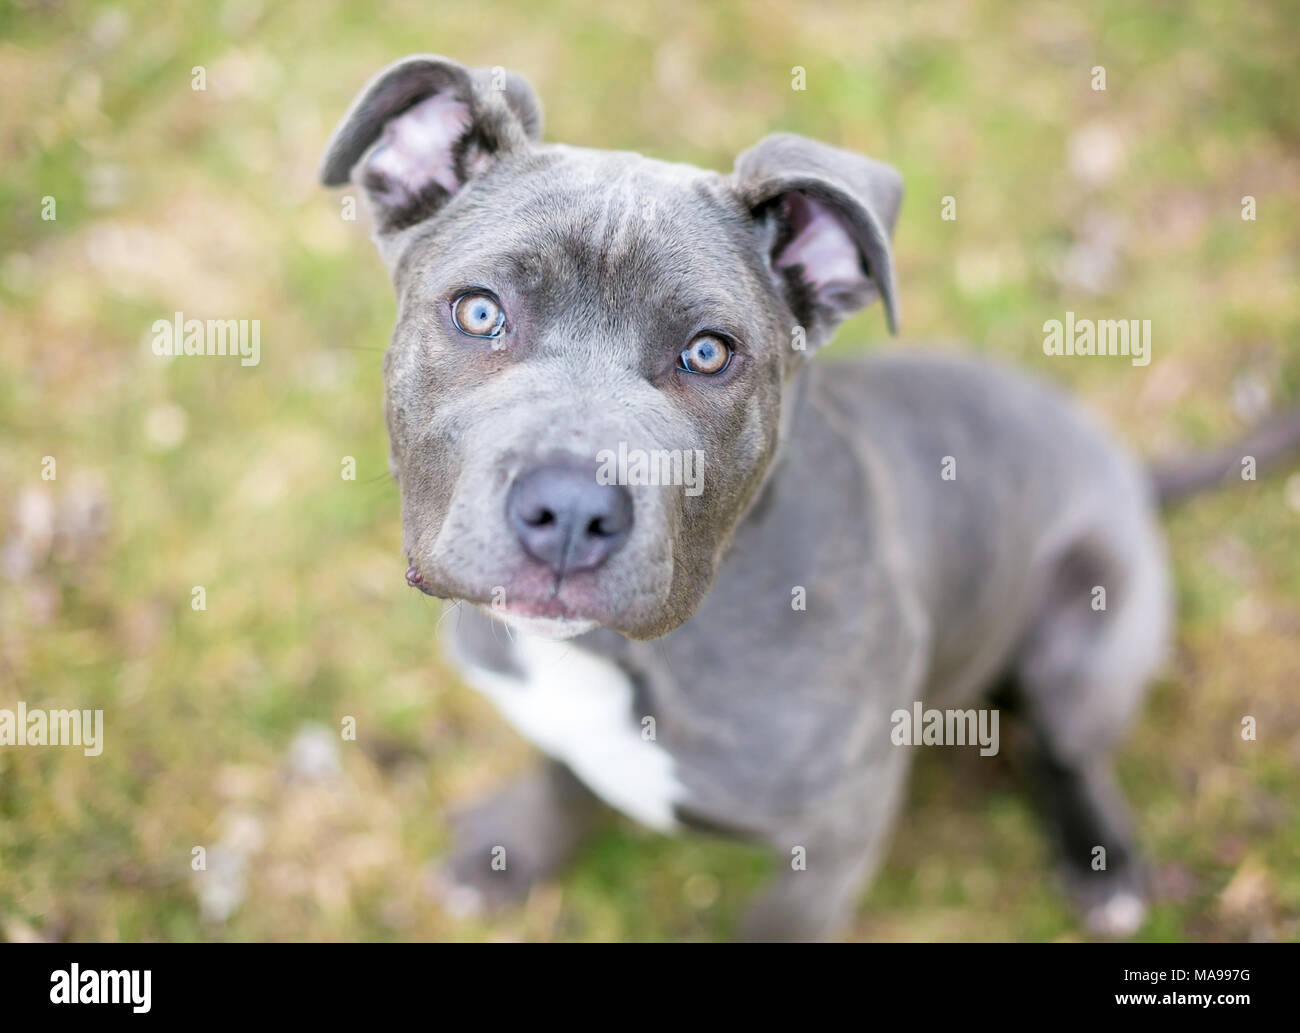 Blue Cane Corso High Resolution Stock Photography And Images Alamy